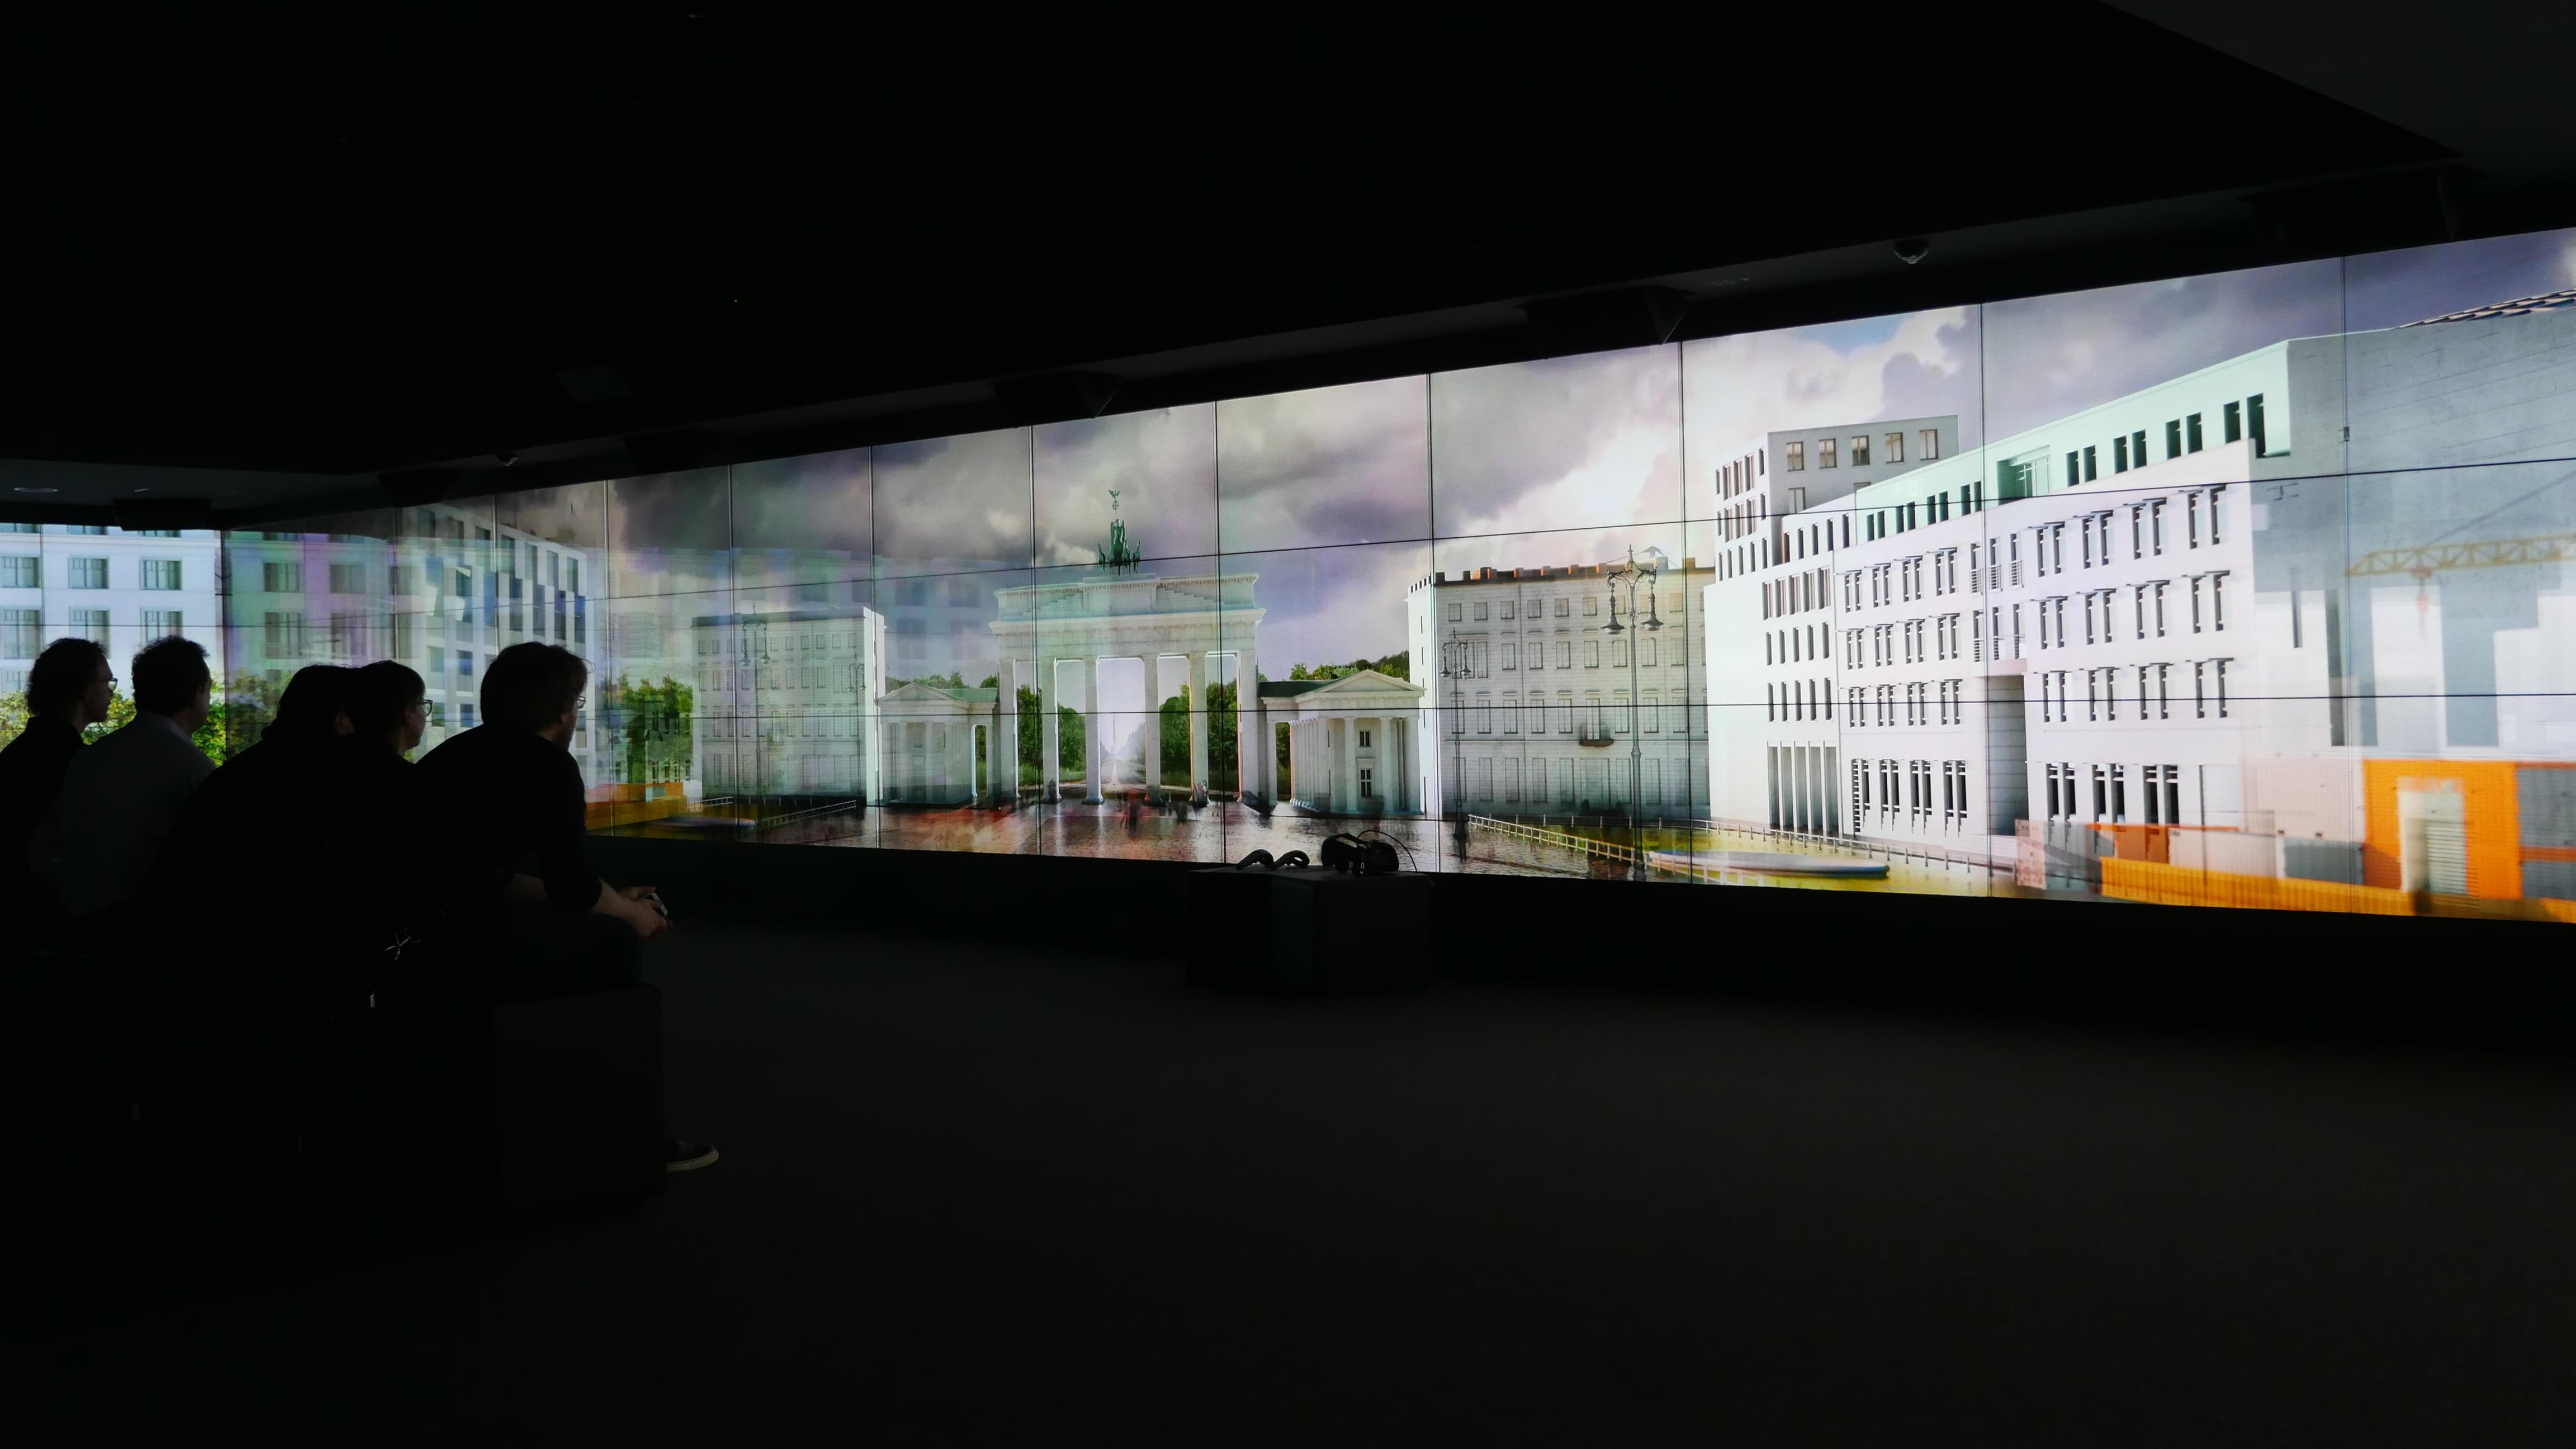 photo: Panasonic media screens used to tell the story of Berlin through the history of the Brandenburger Gate at Brandenburger Gate Museum